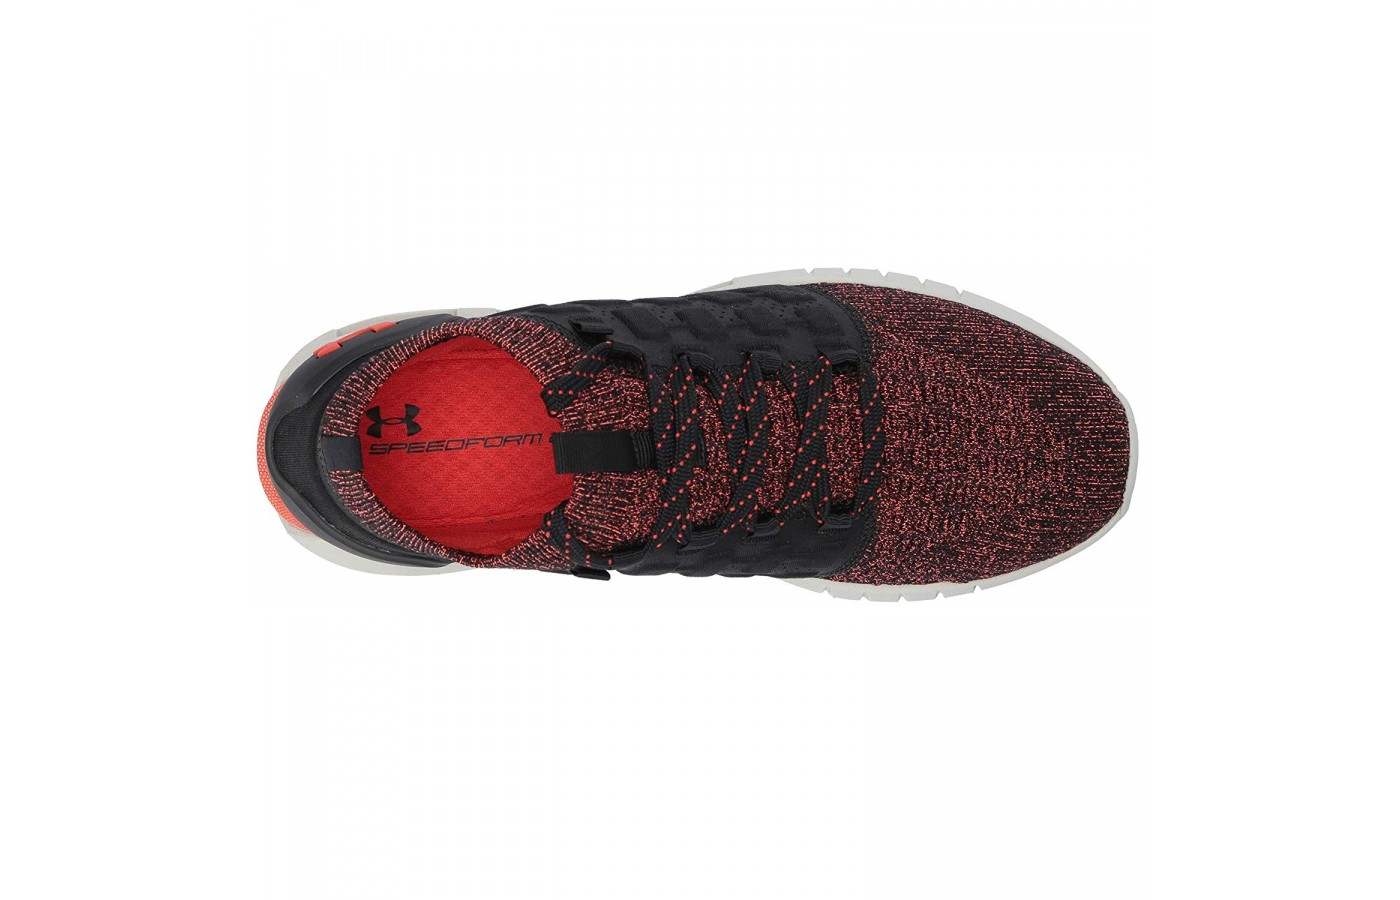 The Under Armour HOVR Phantom offers an all knit top for better stability and comfort.